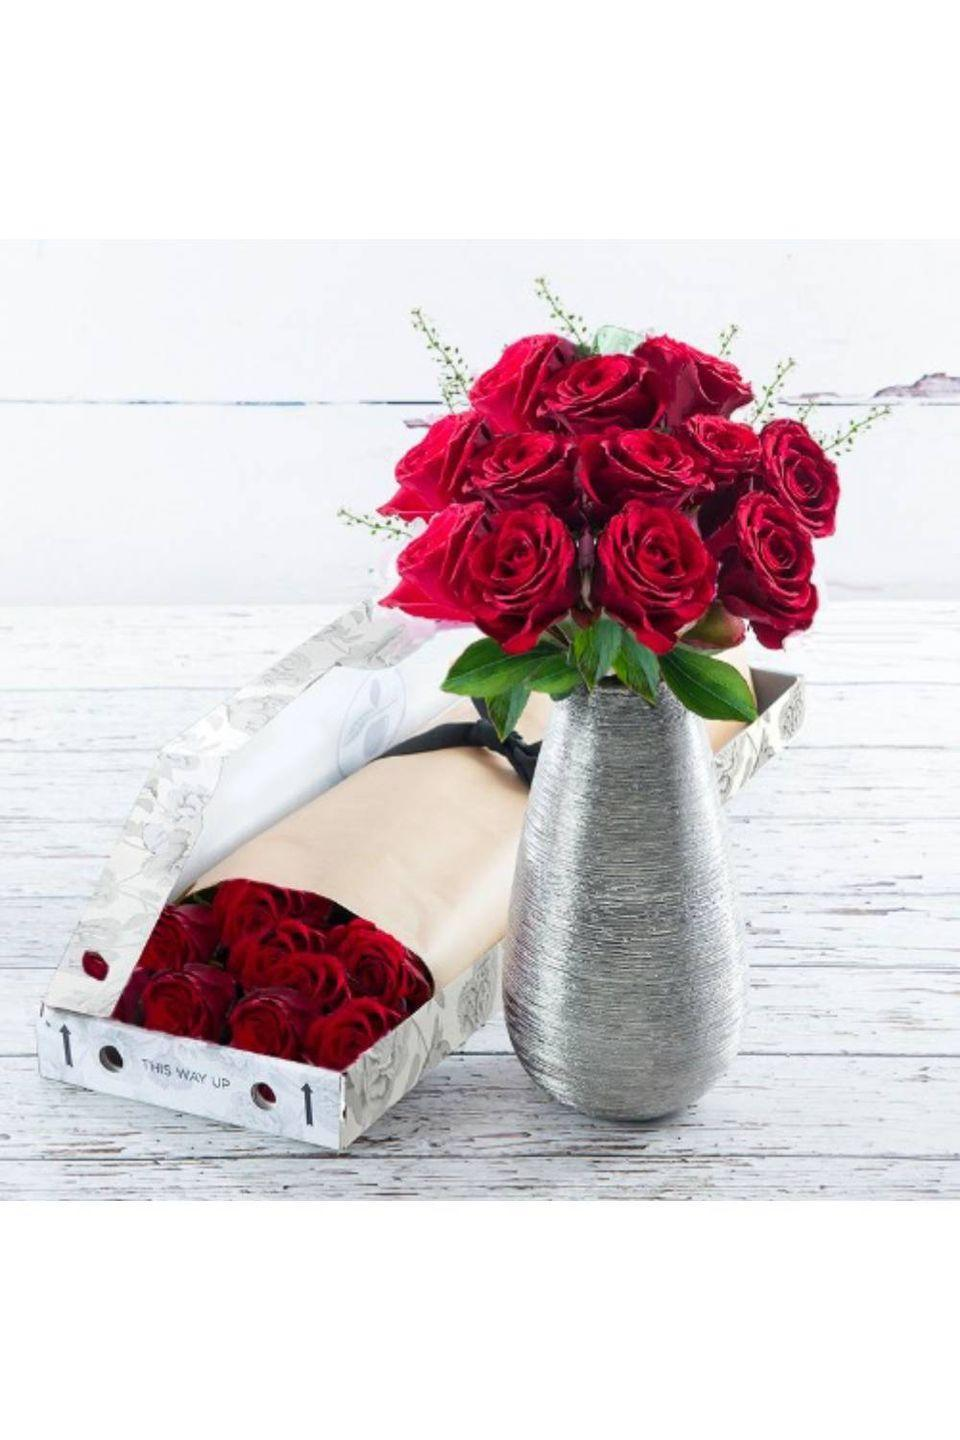 """<p><strong><a class=""""link rapid-noclick-resp"""" href=""""https://go.redirectingat.com?id=127X1599956&url=https%3A%2F%2Fwww.appleyardflowers.com%2Fflowers%2Fred-roses%2F12-red-roses&sref=https%3A%2F%2Fwww.cosmopolitan.com%2Fuk%2Fworklife%2Fg26812477%2Fsame-day-flower-delivery-uk%2F"""" rel=""""nofollow noopener"""" target=""""_blank"""" data-ylk=""""slk:BUY NOW"""">BUY NOW</a> Letterbox 12 red roses, from £12.99, Appleyard London</strong><br></p><p>These letterbox red roses can be delivered straight through the recipient's letterbox, and on the same day if ordered by 4pm and in London. Alternatively, order up to 8pm for them to be delivered next day in the UK. Perfect</p>"""